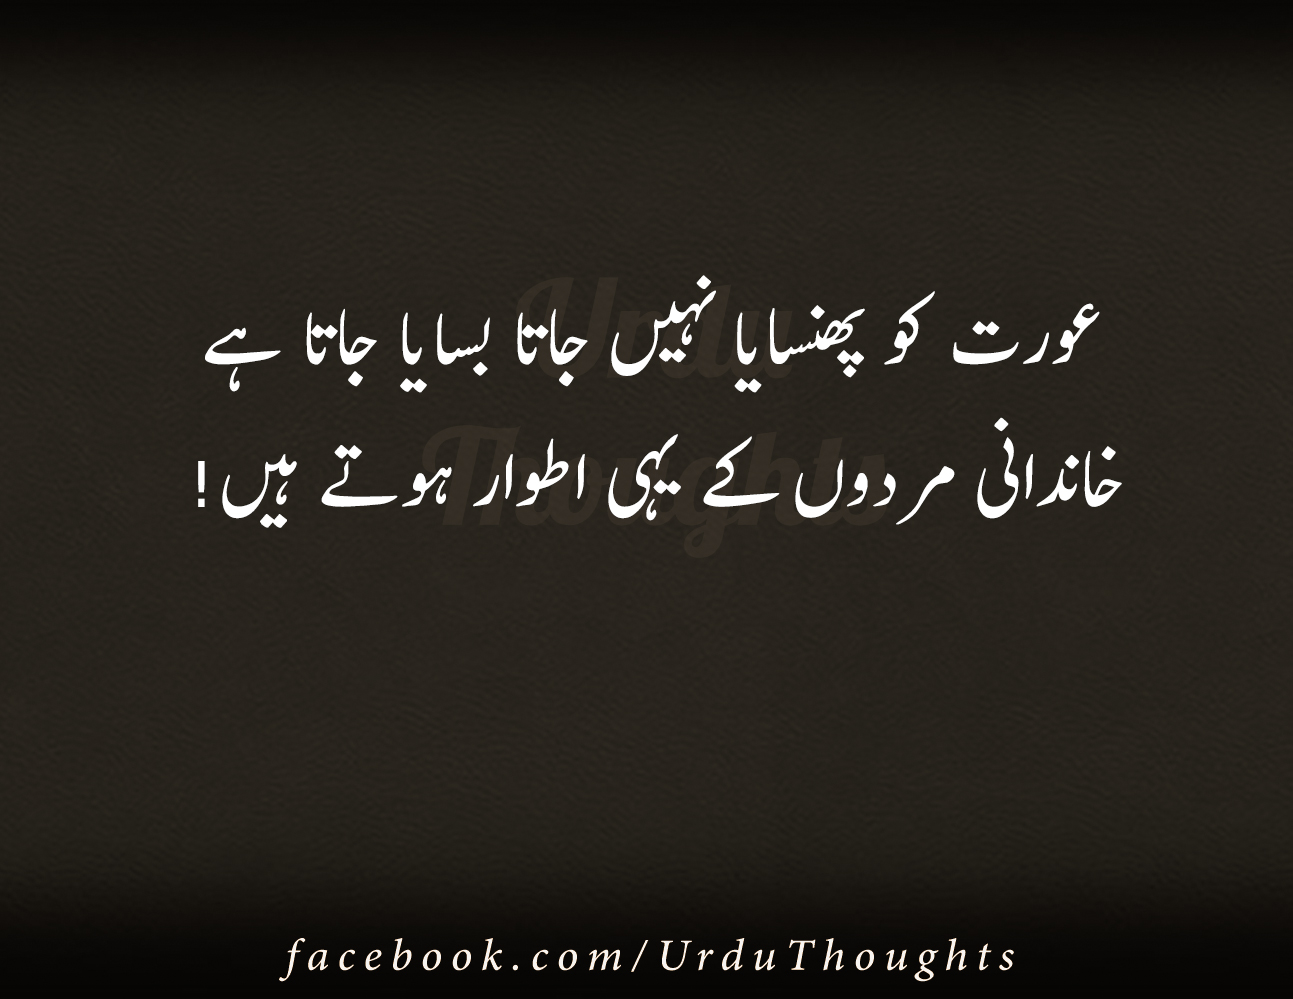 awesome quote of life urdu